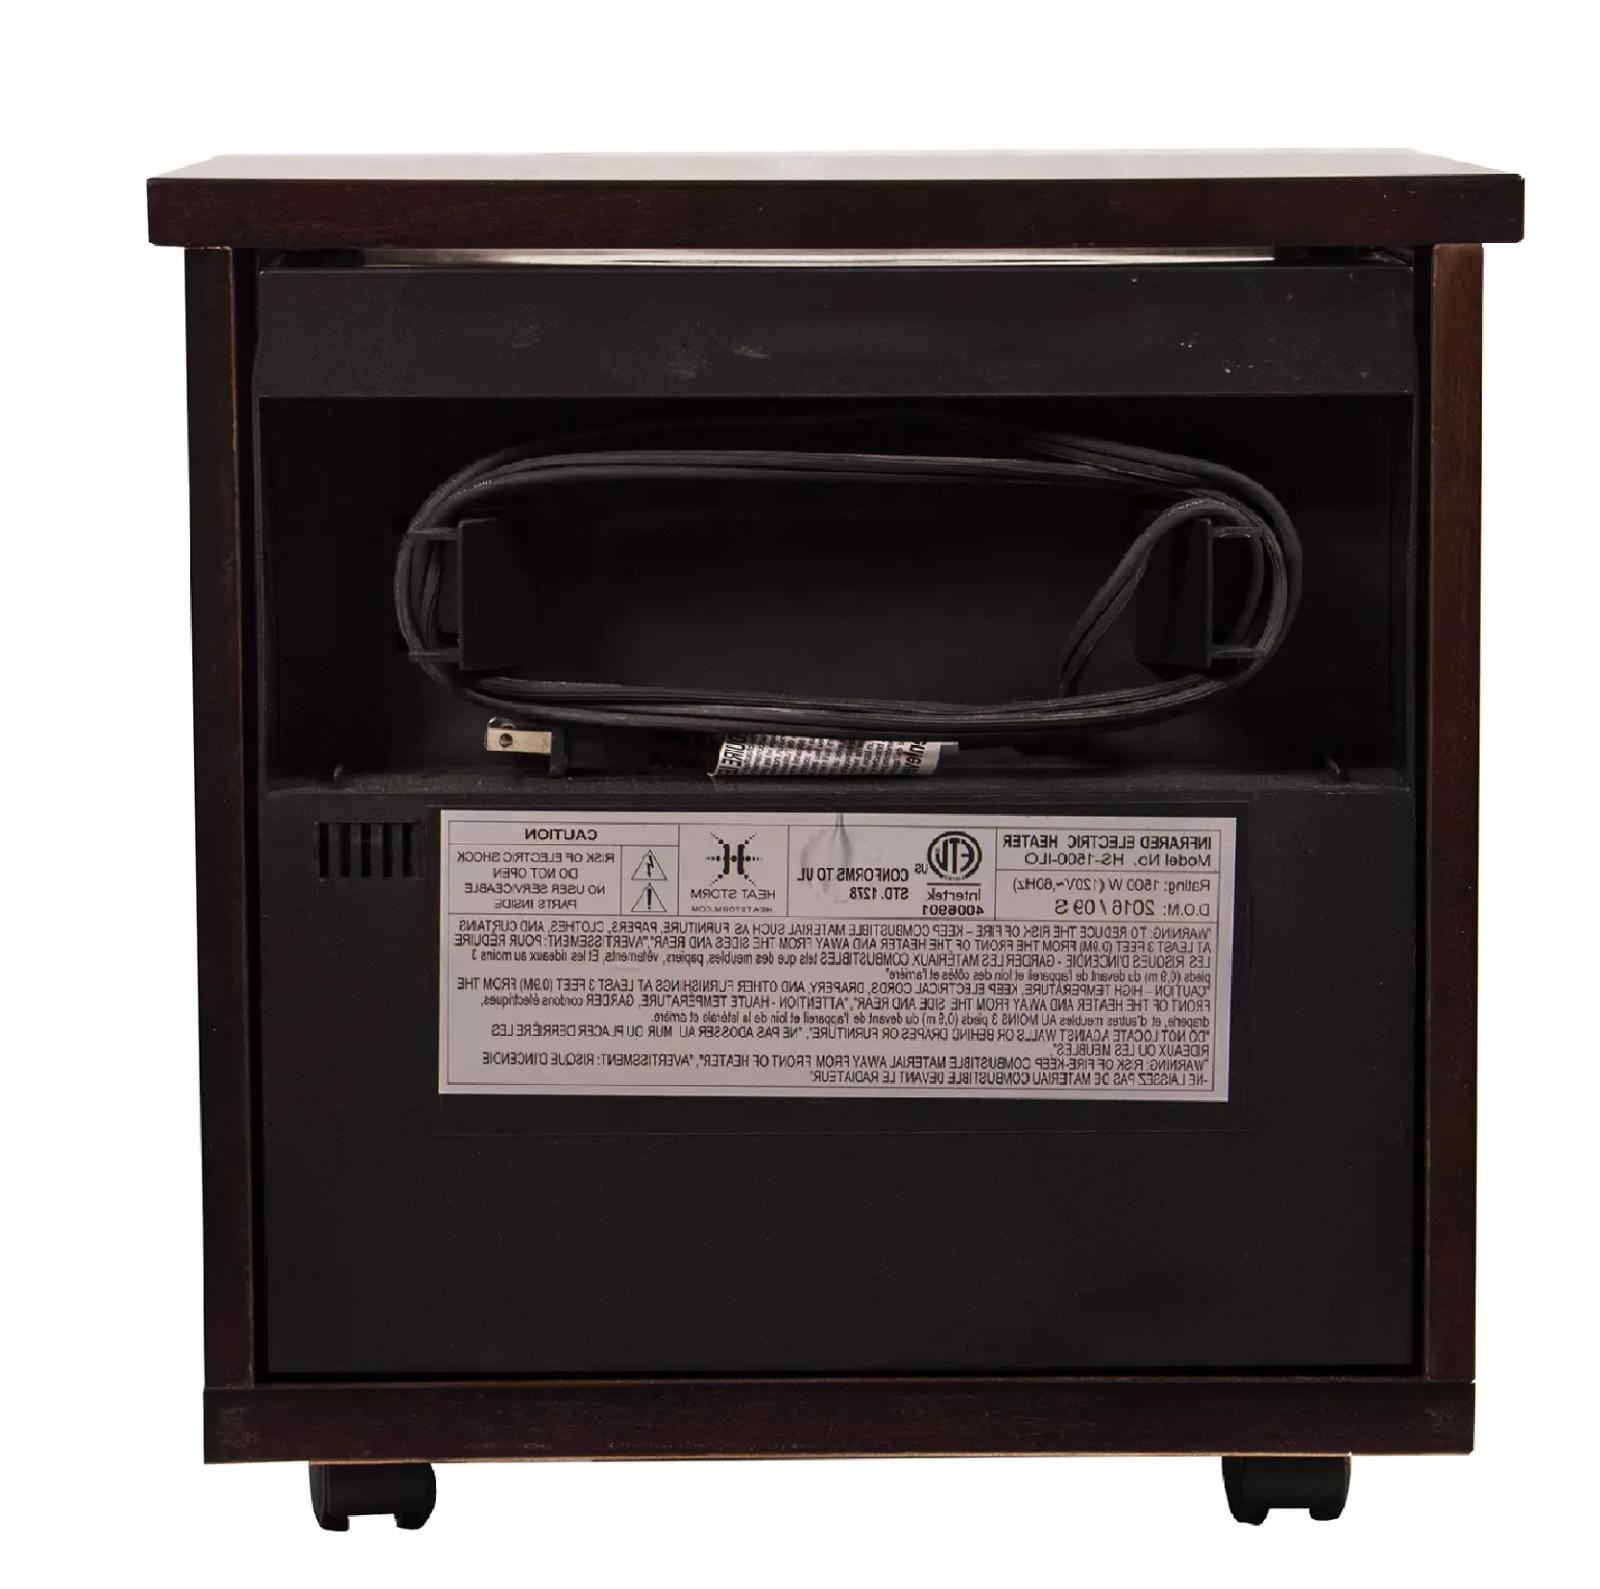 Heat Storm Infrared Wood Heater wall Heat FREE SHIPPING